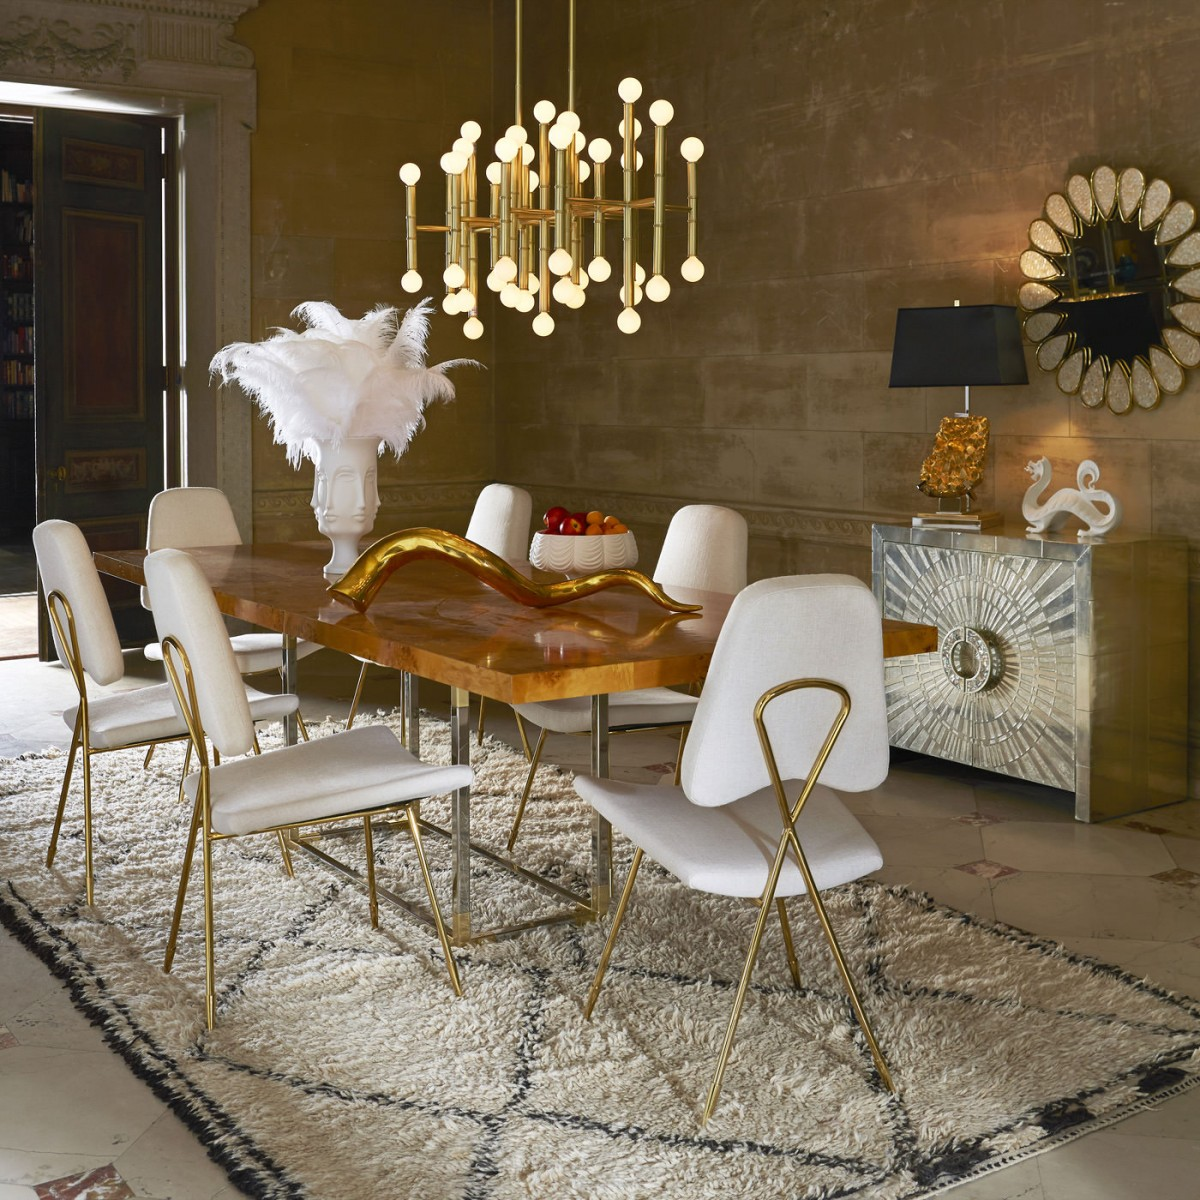 Modern Dining Chandeliers Designer Focus Jonathan Adler King Of Happy Chic